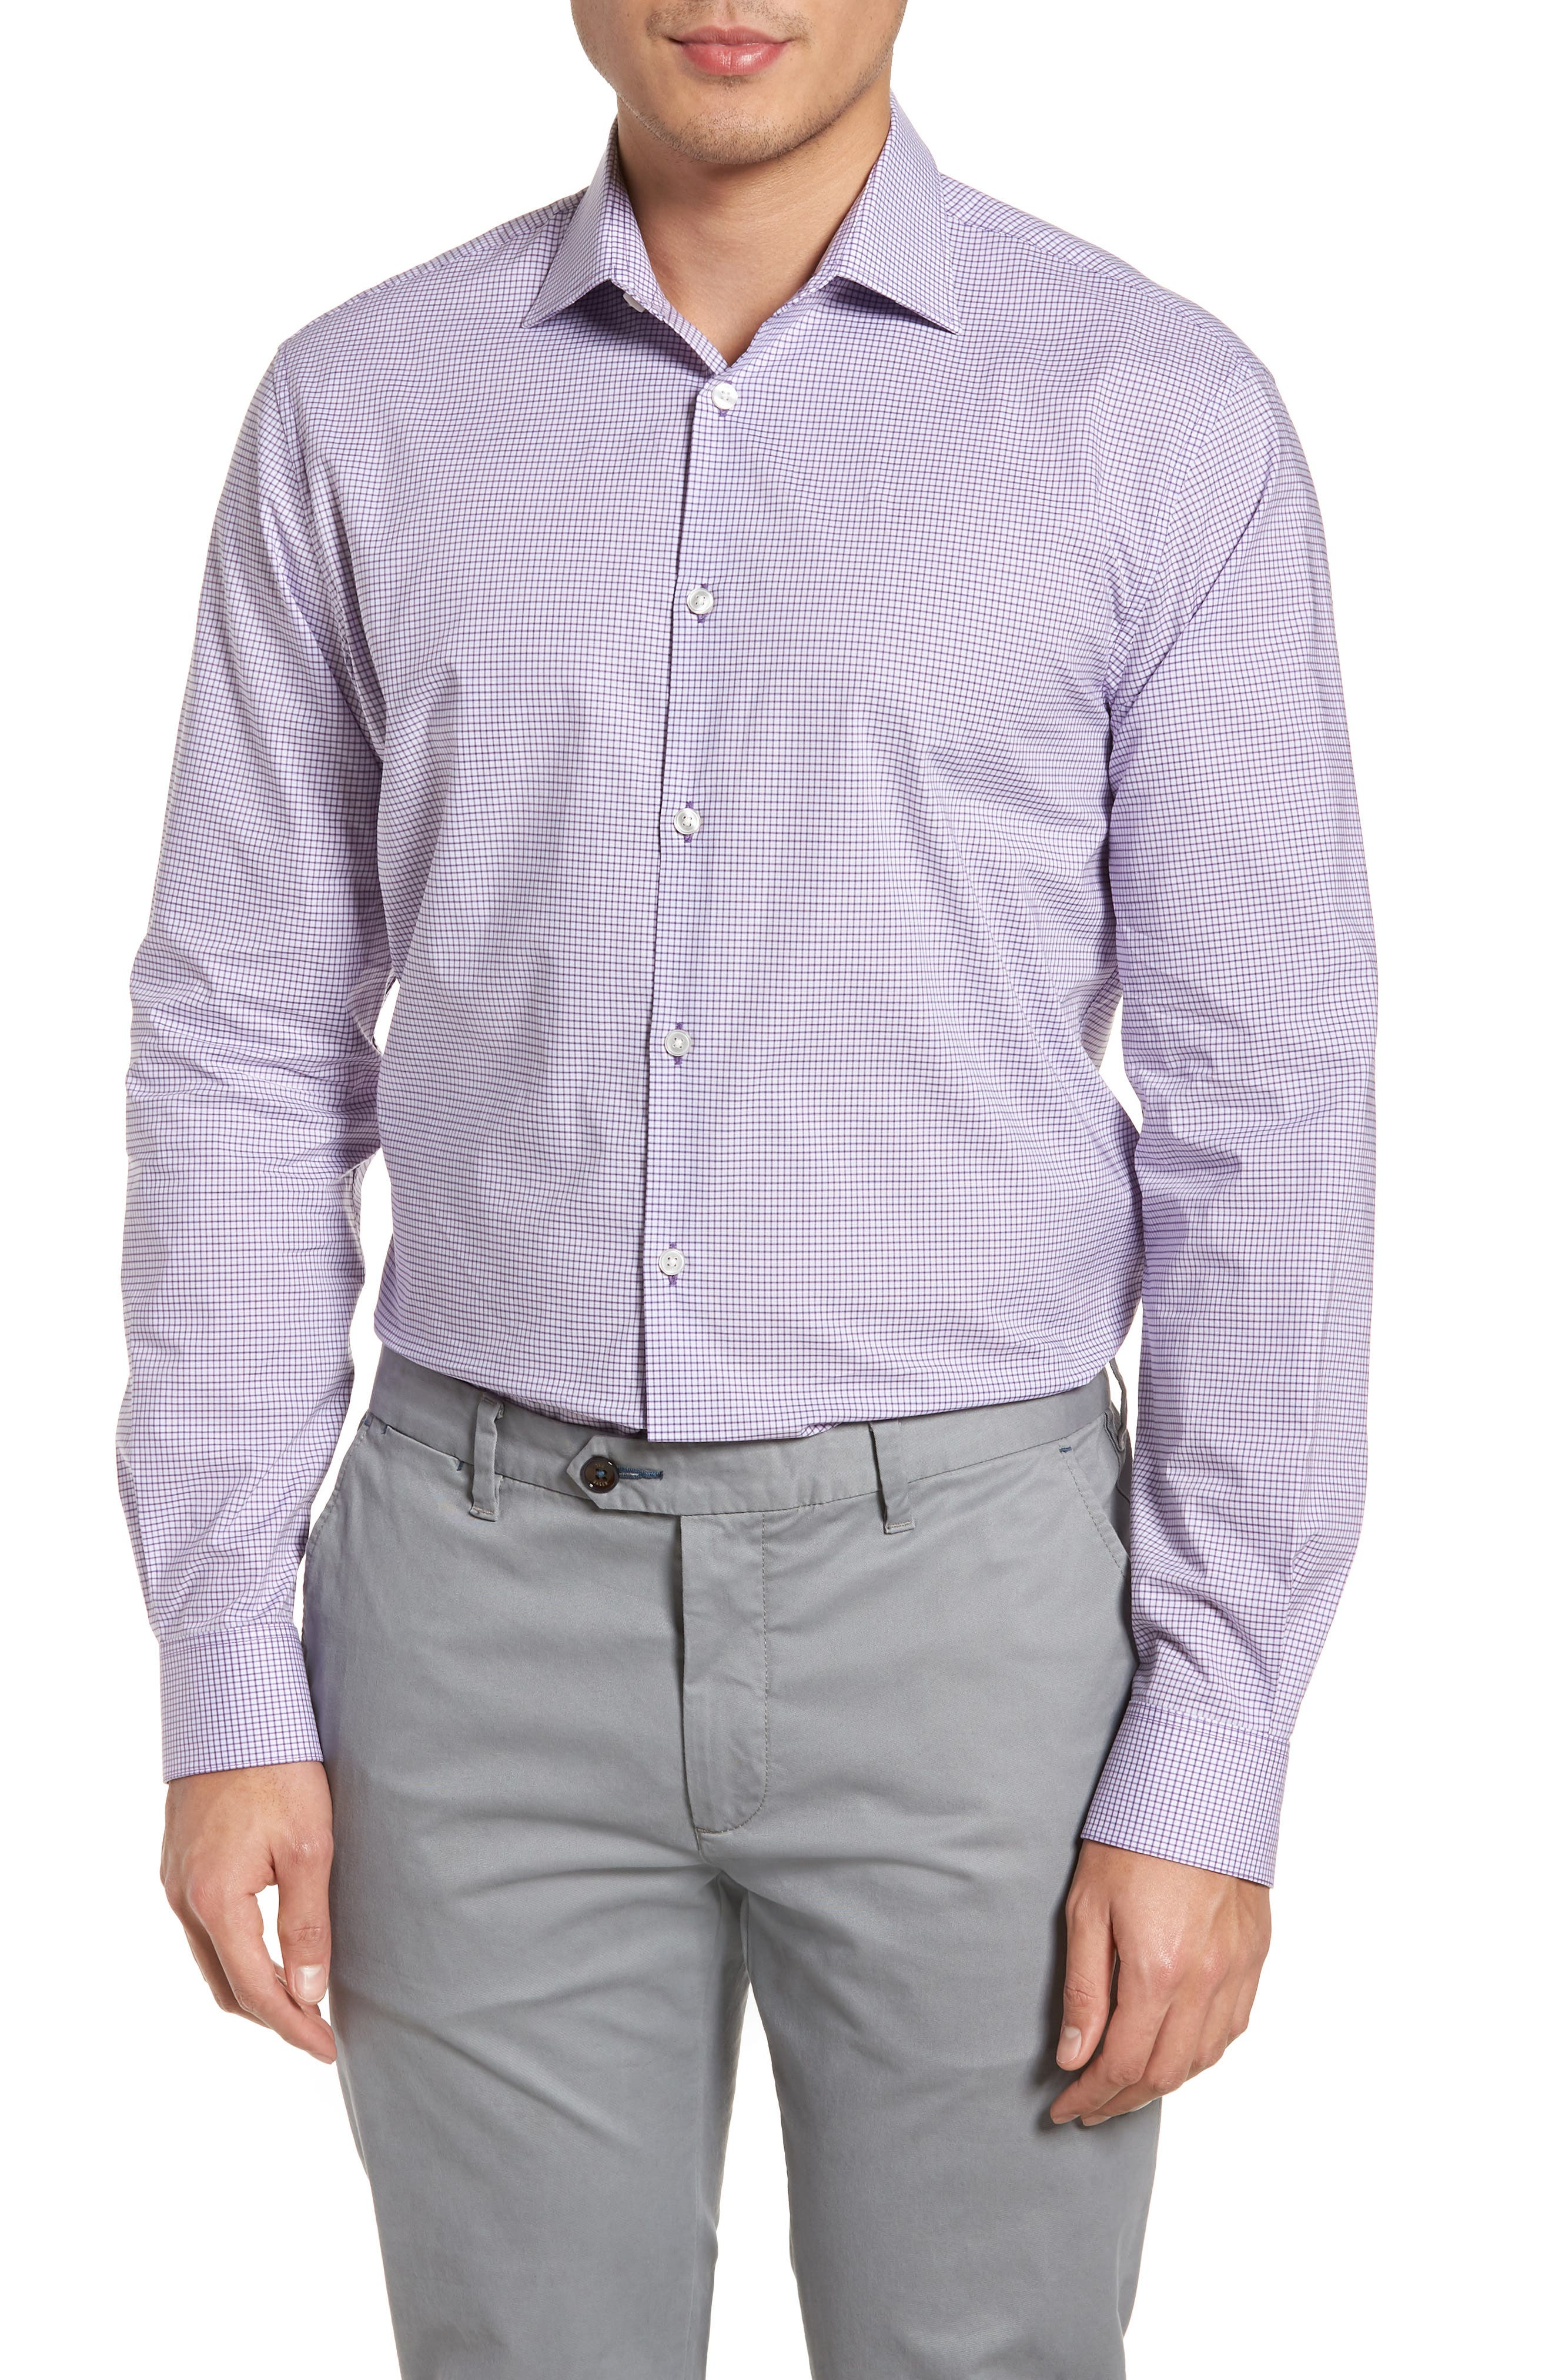 Regular Fit Stretch Check Dress Shirt,                         Main,                         color, 522